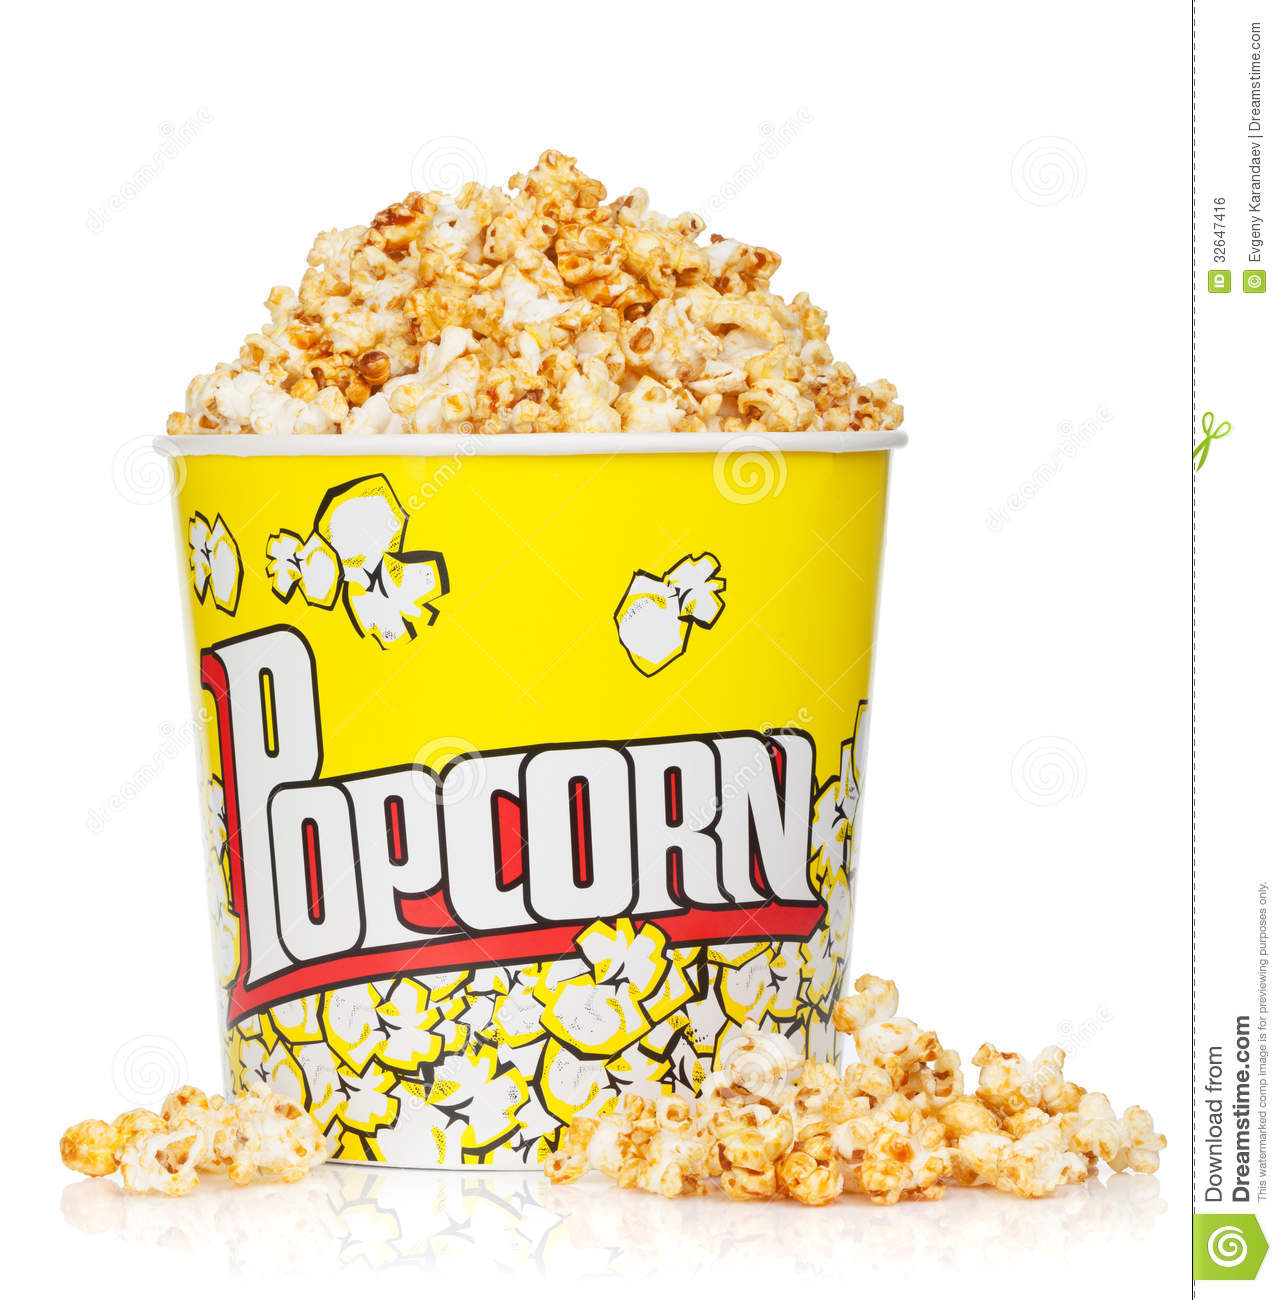 Popcorn box stock photo. Image of white, image, film ...